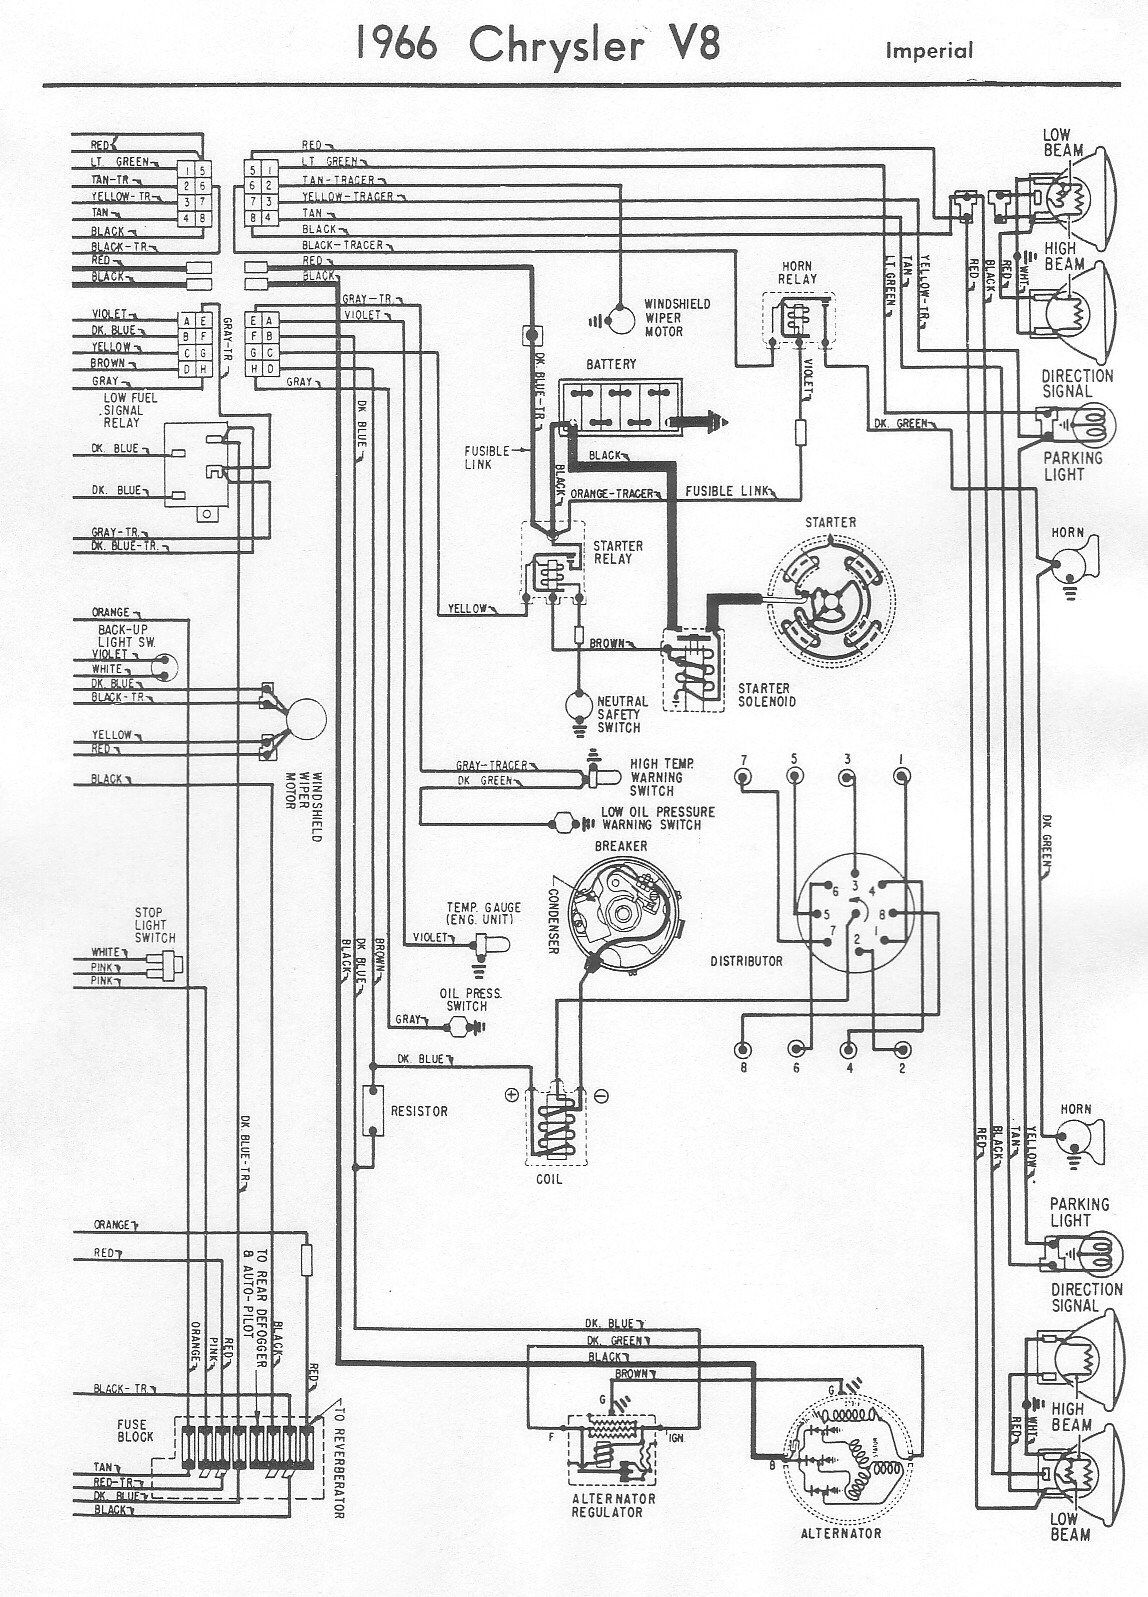 Imperial Wiring Diagrams Diagram Will Be A Thing 84 Shovelhead Diy Free Auto 1970 Plymouth Belvedere Gtx Automotive Residential Electrical